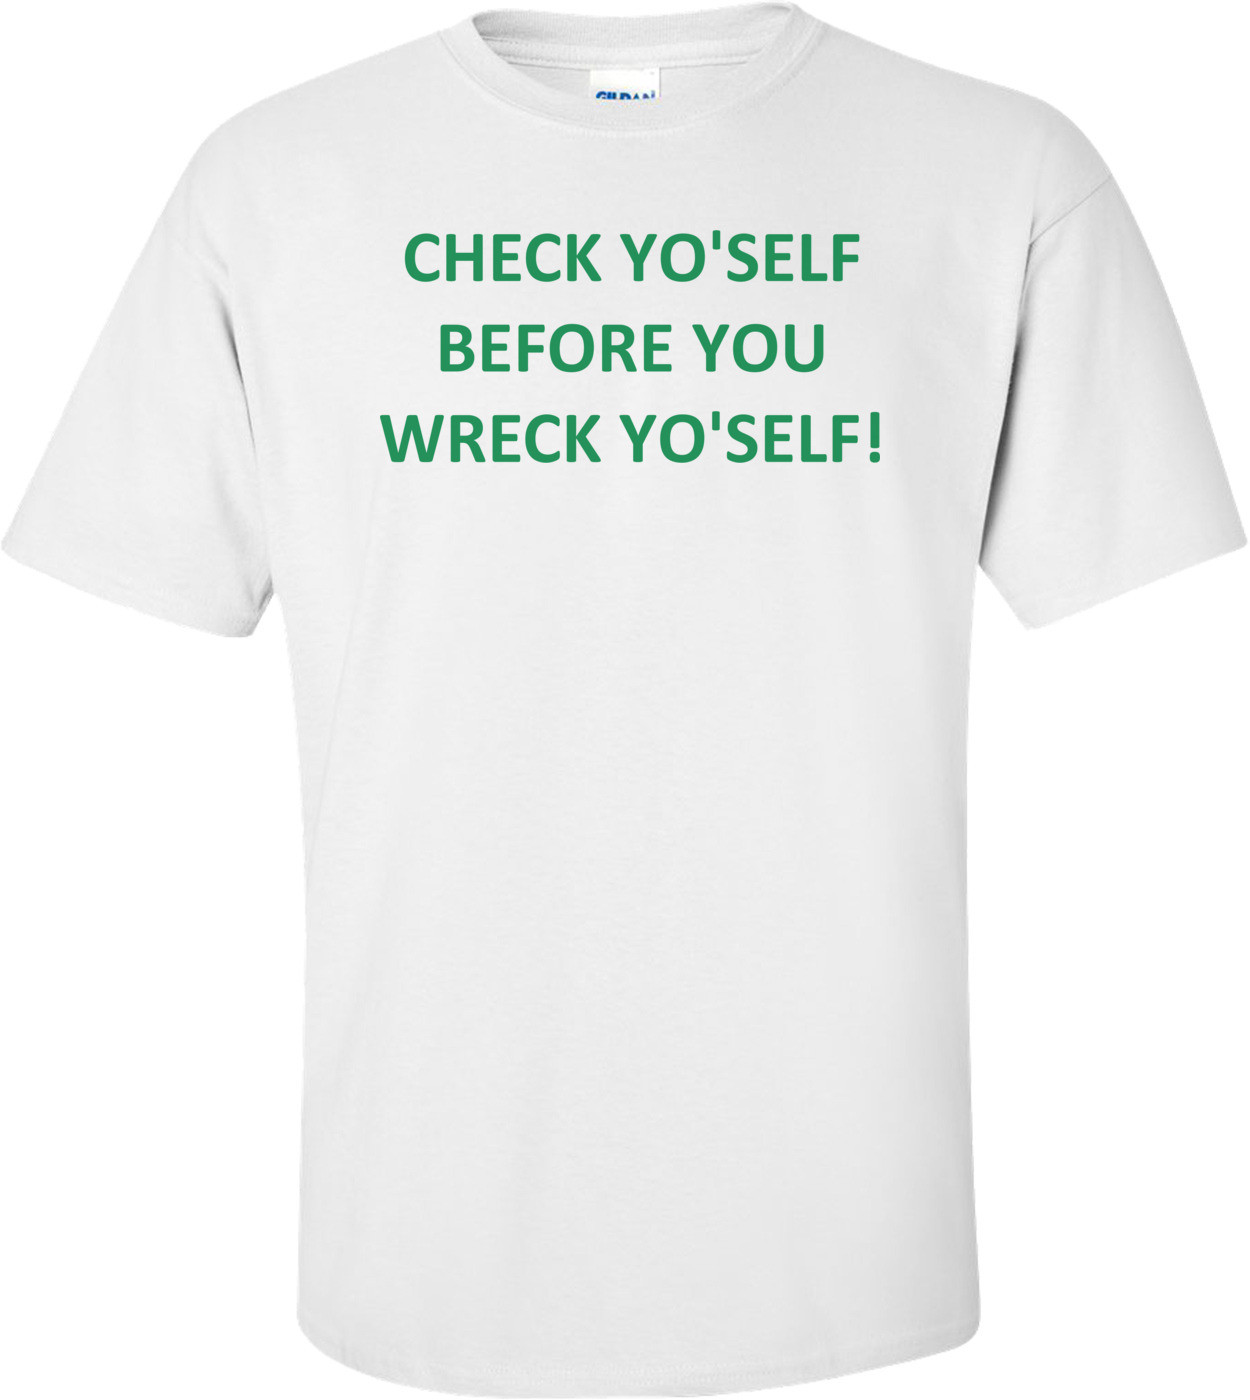 CHECK YO'SELF BEFORE YOU WRECK YO'SELF! Shirt